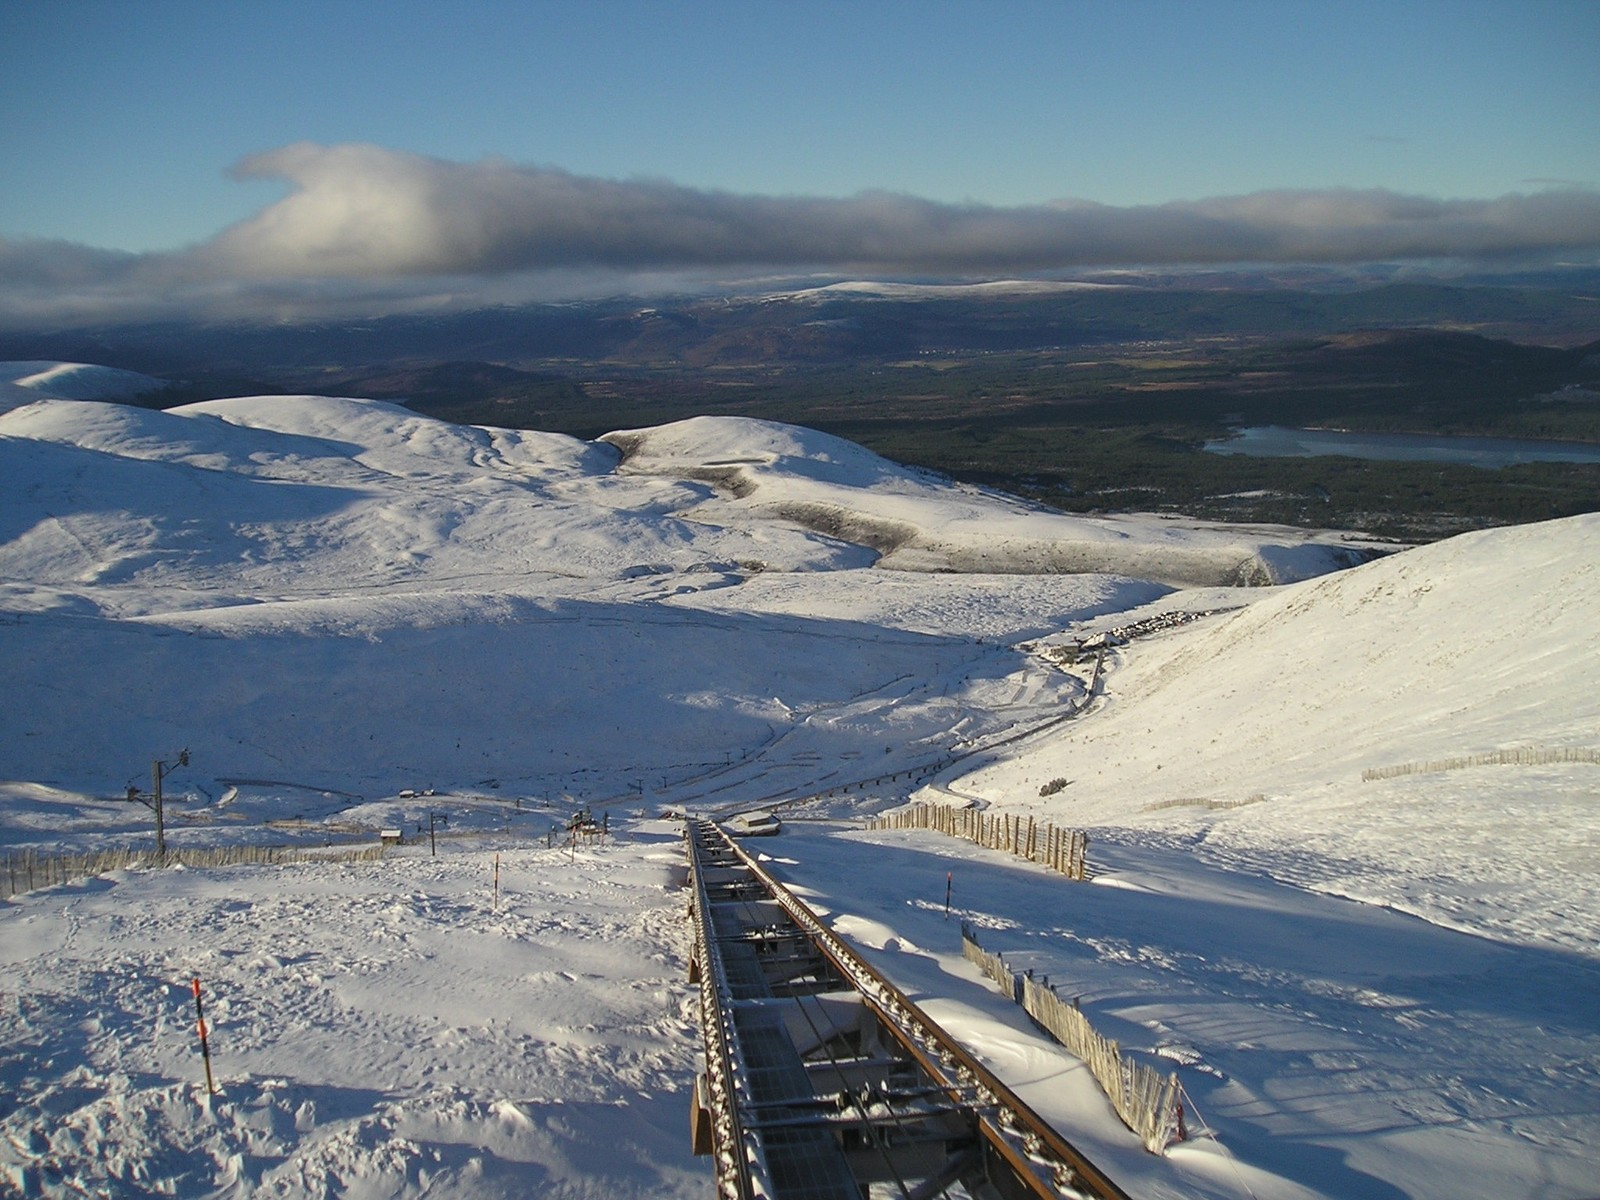 View from the Cairngorm Funicular Railway (29/01/17)